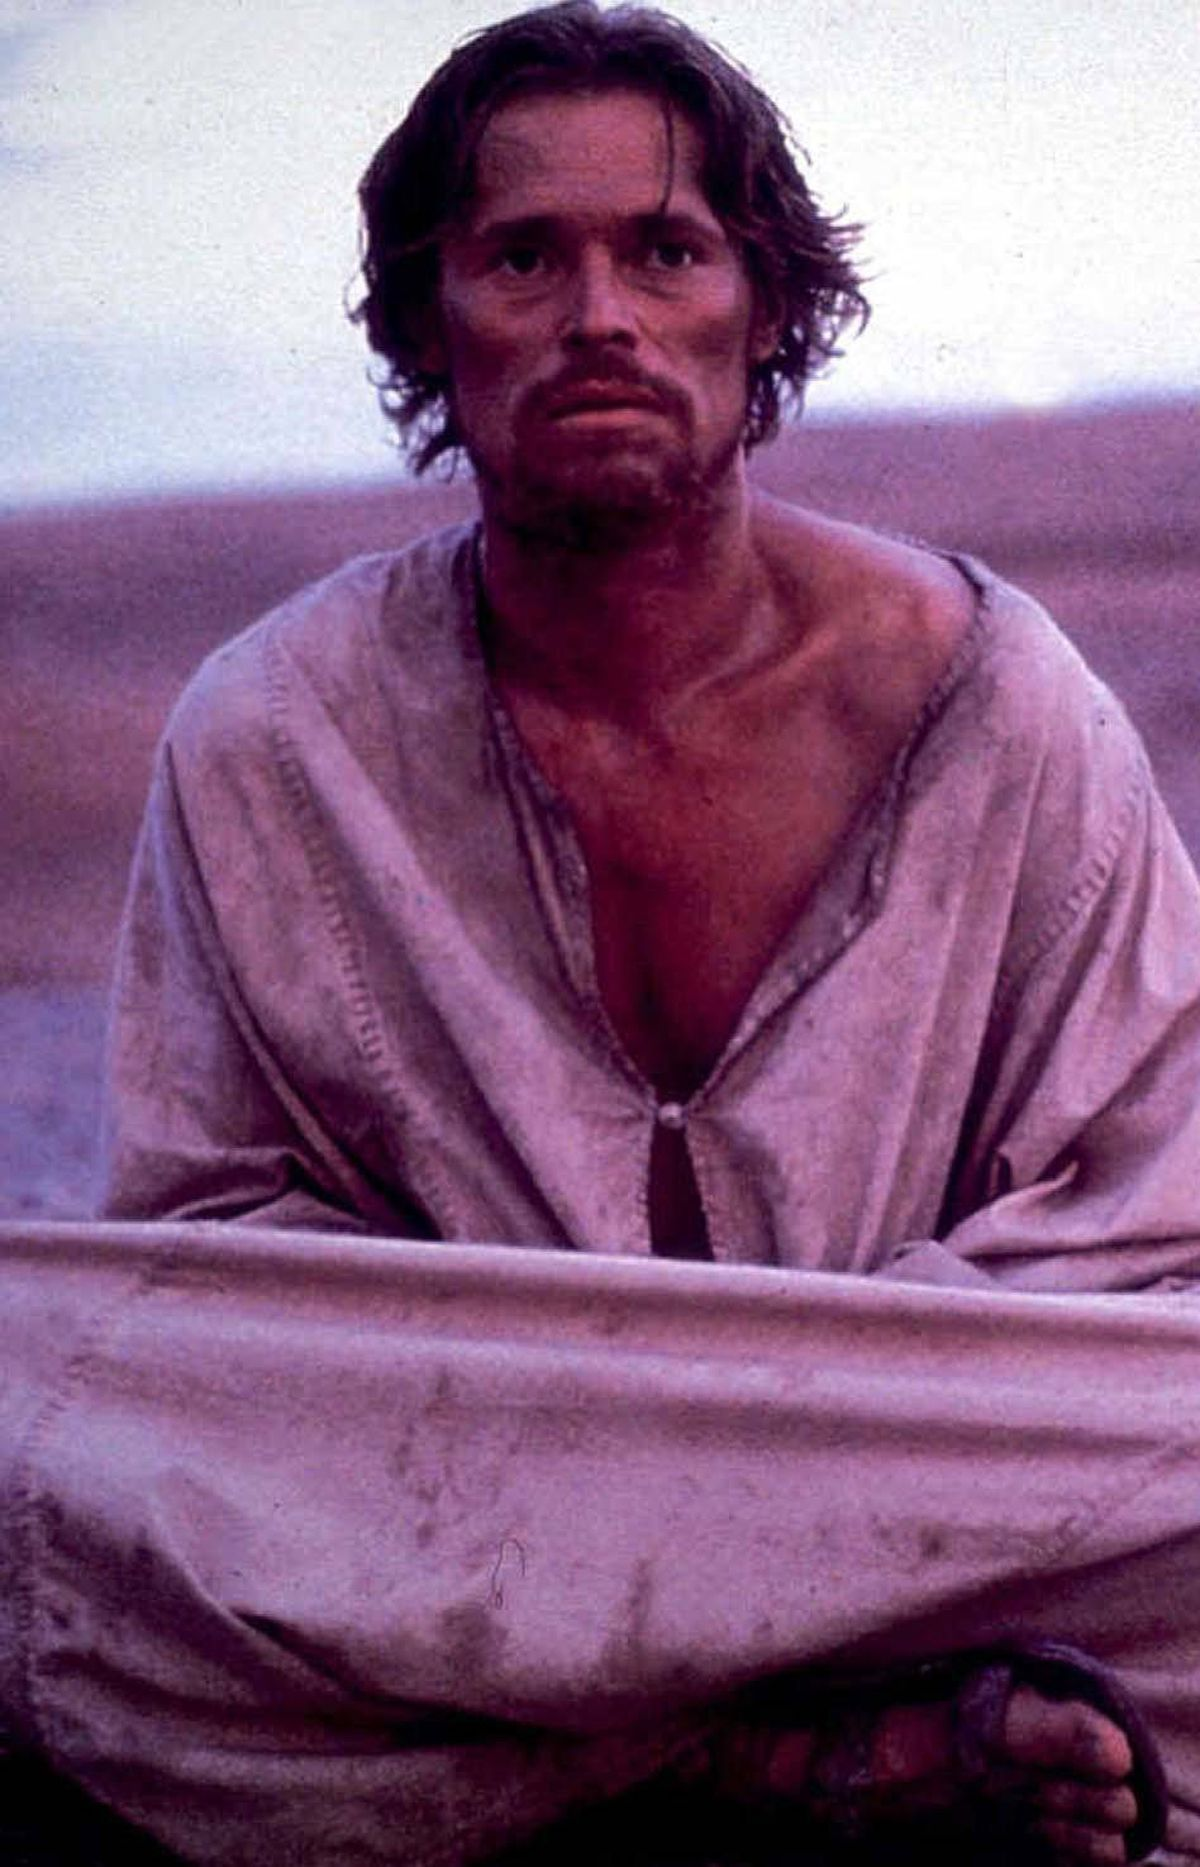 MOVIE The Last Temptation of Christ Vision, 11 p.m. ET; 8 p.m. PT Directed by Martin Scorsese, this movie profile of Jesus Christ stirred up considerable controversy back in 1988. Based on the novel by Nikos Kazantzakis, the film cast Willem Dafoe in the role of Jesus, with Scorsese furthering the central assumption that the son of God was a mere mortal and therefore not immune to the human frailties of fear, doubt, depression and, of course, lust. What really had the devout marching in front of theatres was the fantasized sex scene between Jesus and Mary Magdalene (Barbara Hershey). Watch for pop star David Bowie in a brief screen turn as Pontius Pilate.